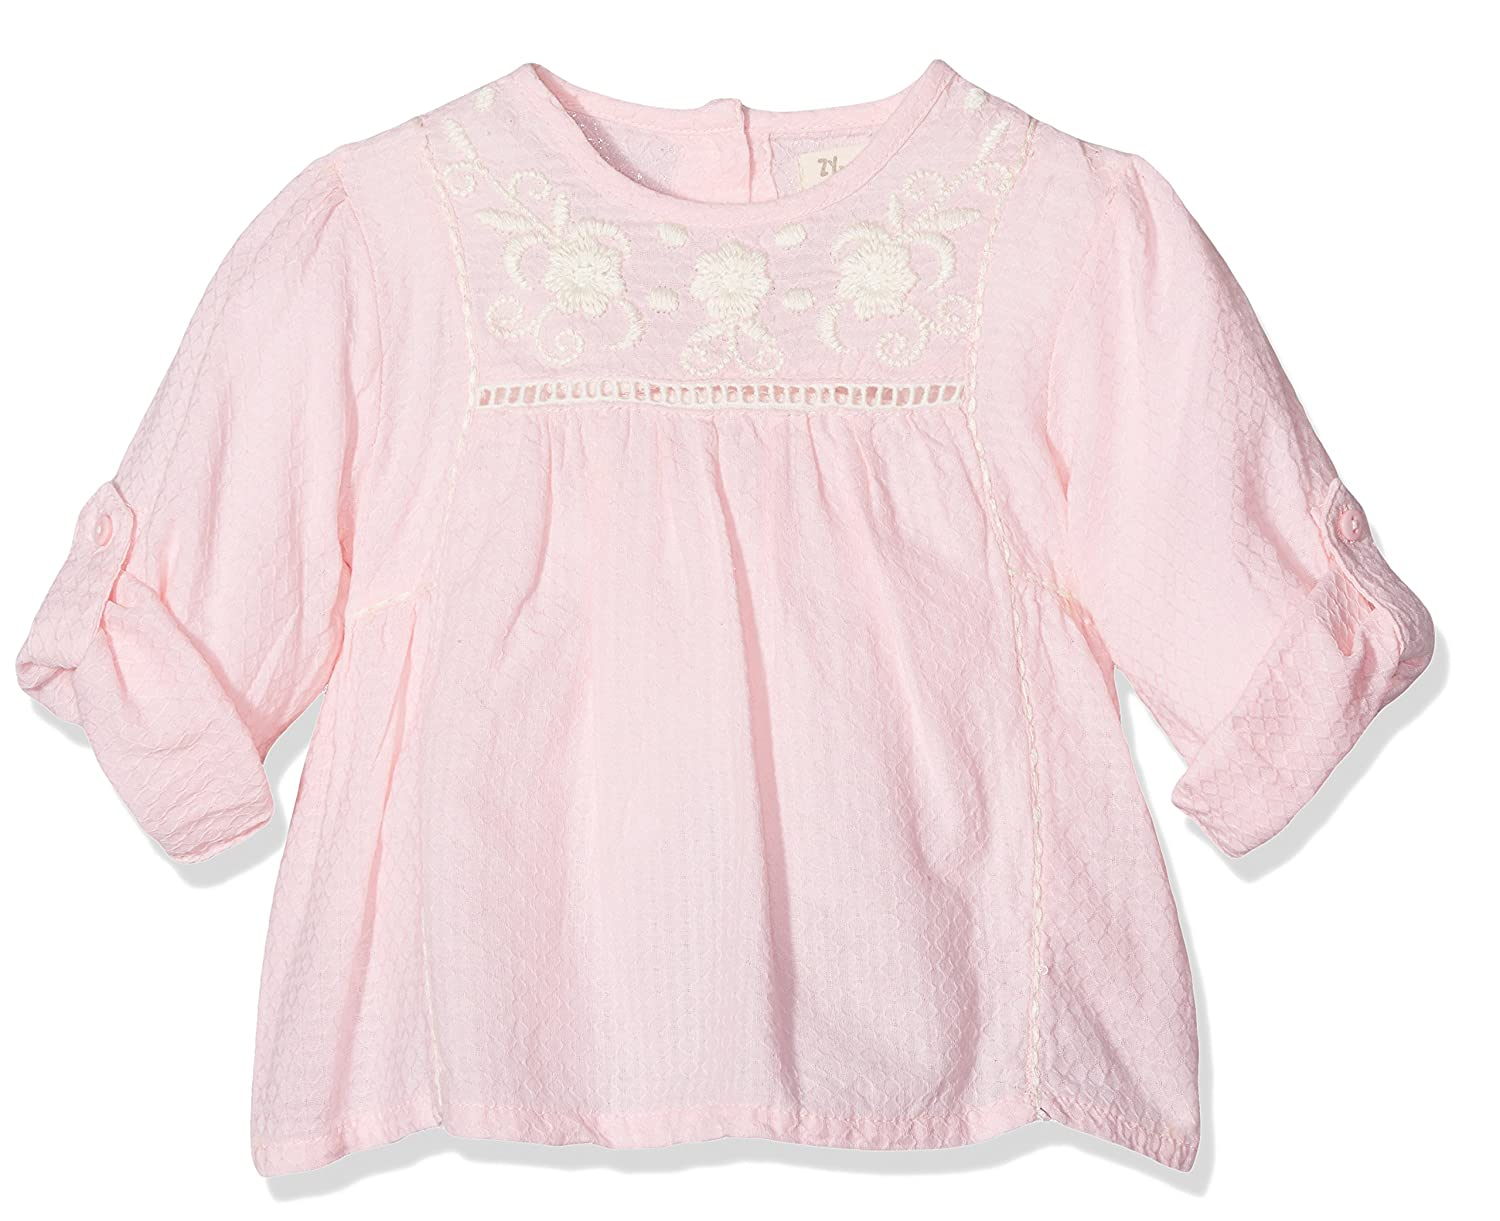 Zippy Camicia Bimba Zippy Ztg14_410_28 Rosa (Crystal Rose)